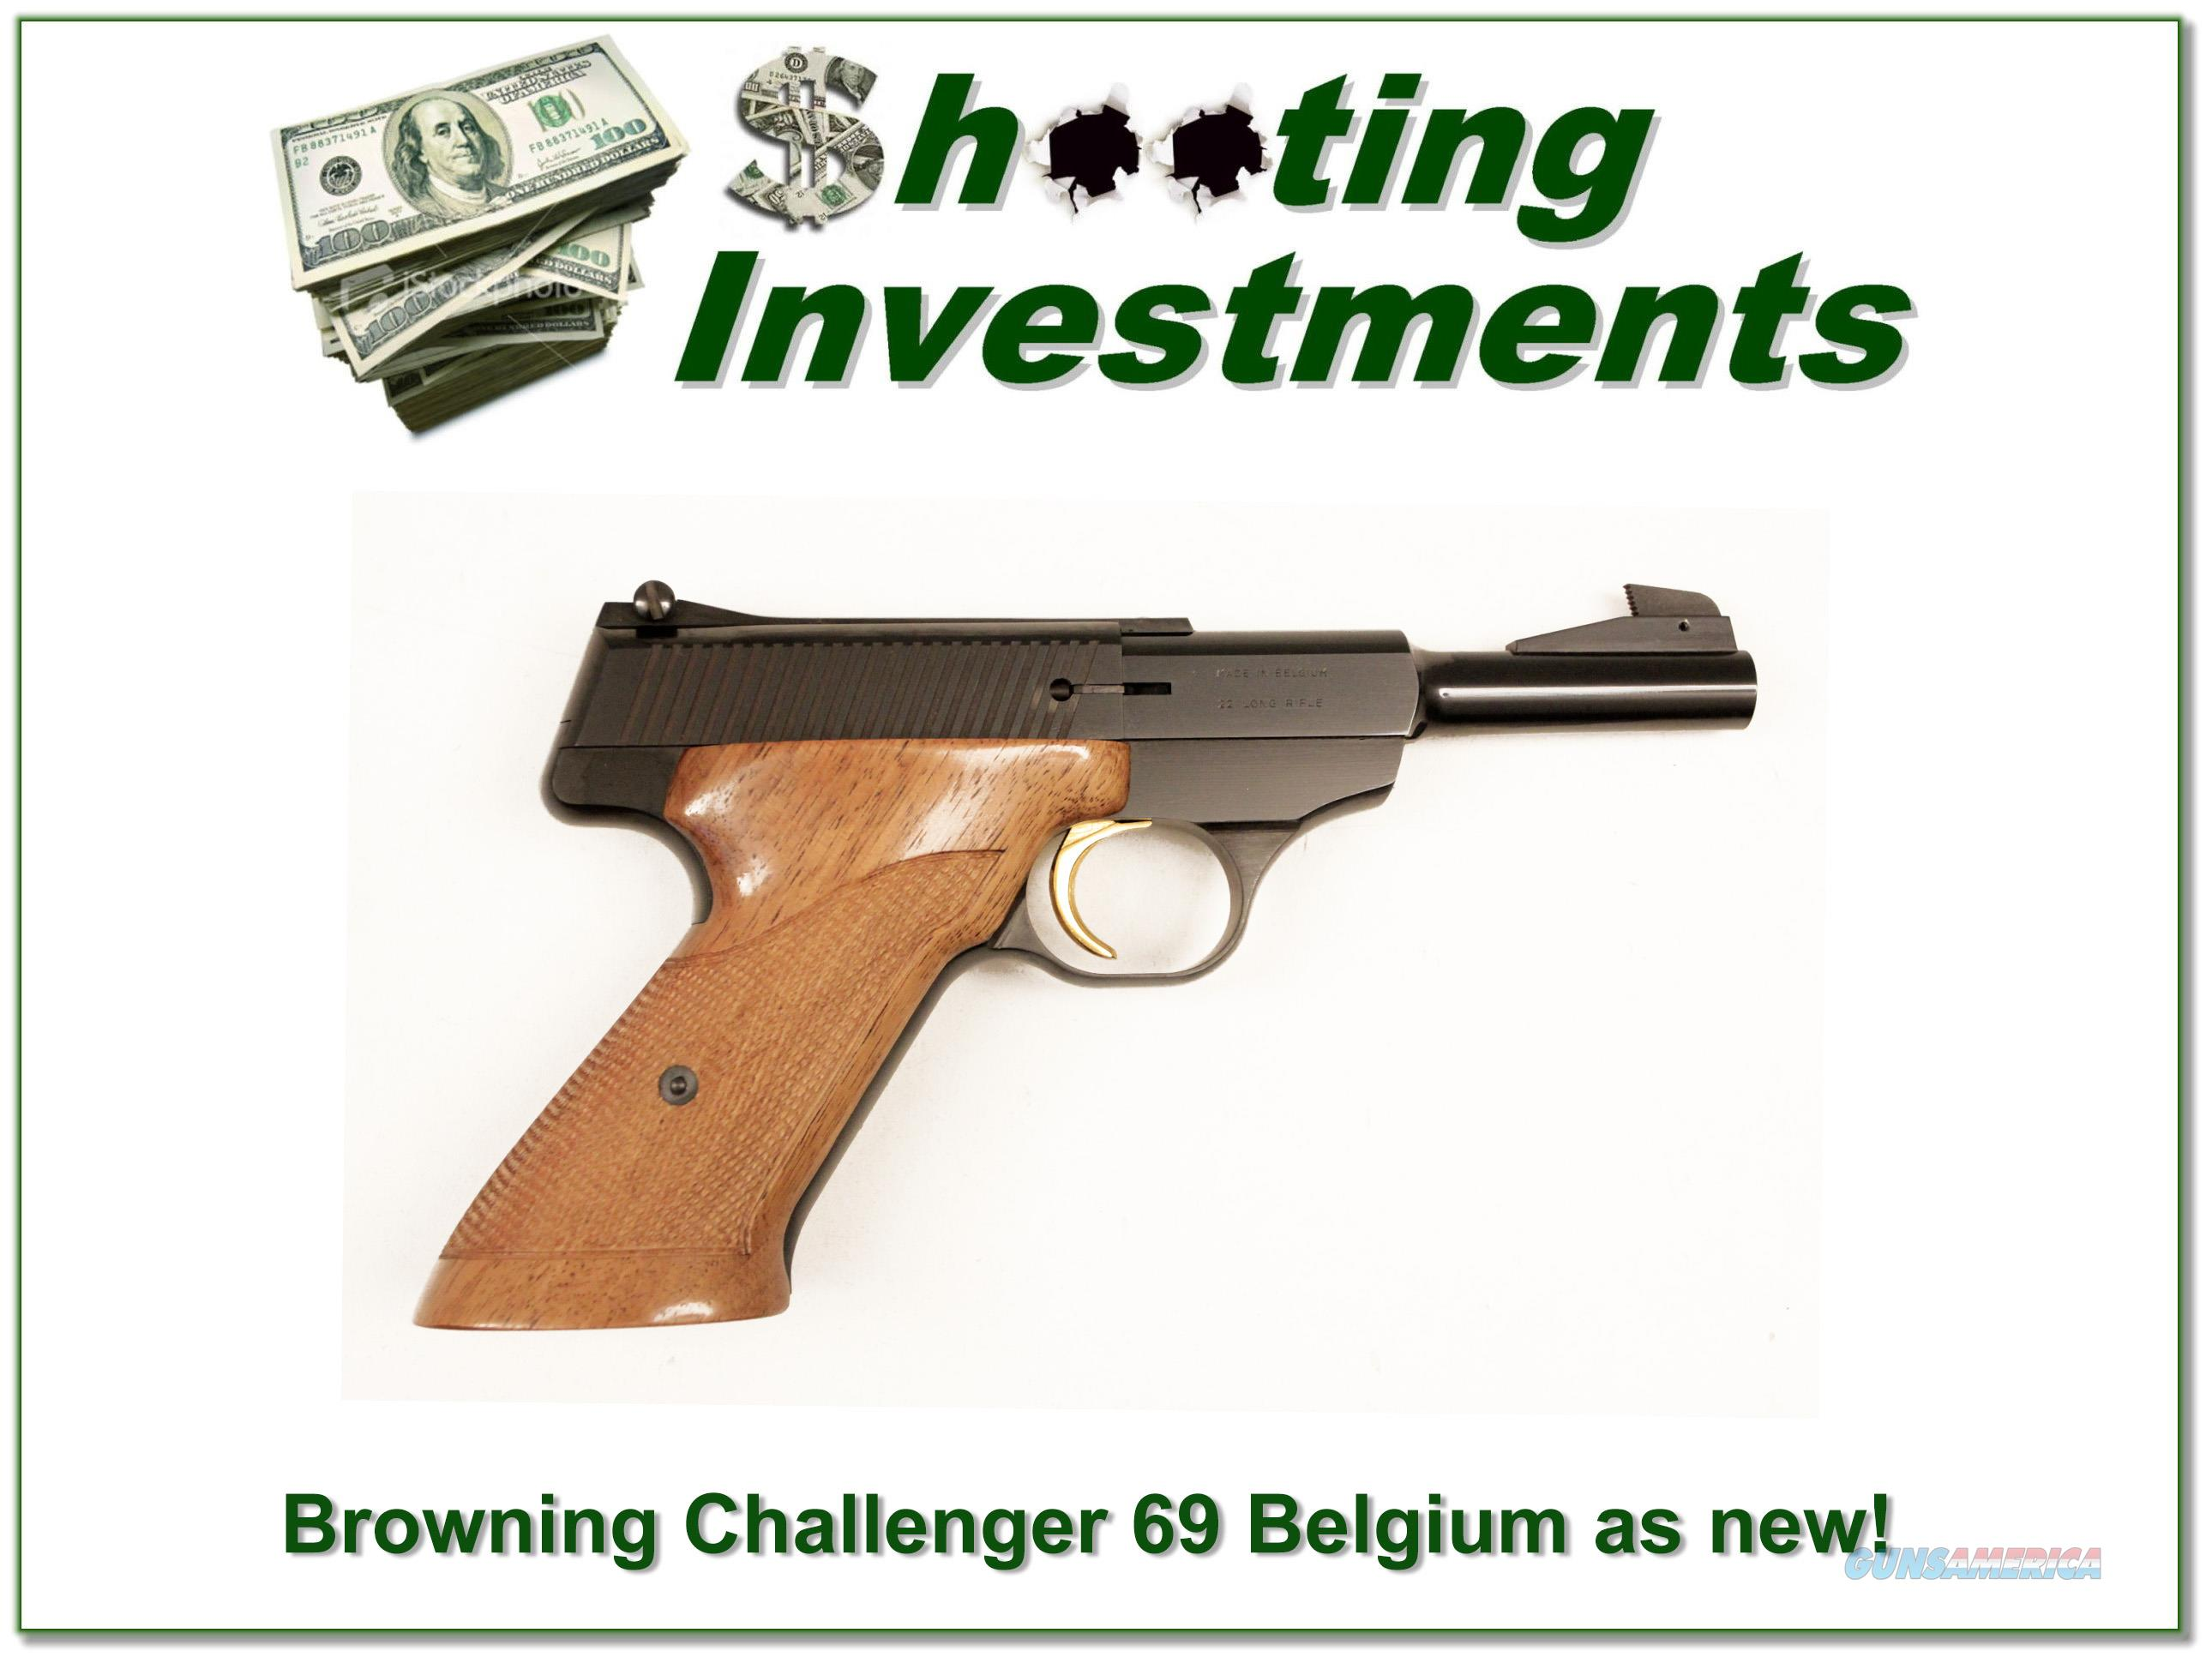 Browning Challenger 69 Belgium 4 1/2 in as new!  Guns > Pistols > Browning Pistols > Other Autos